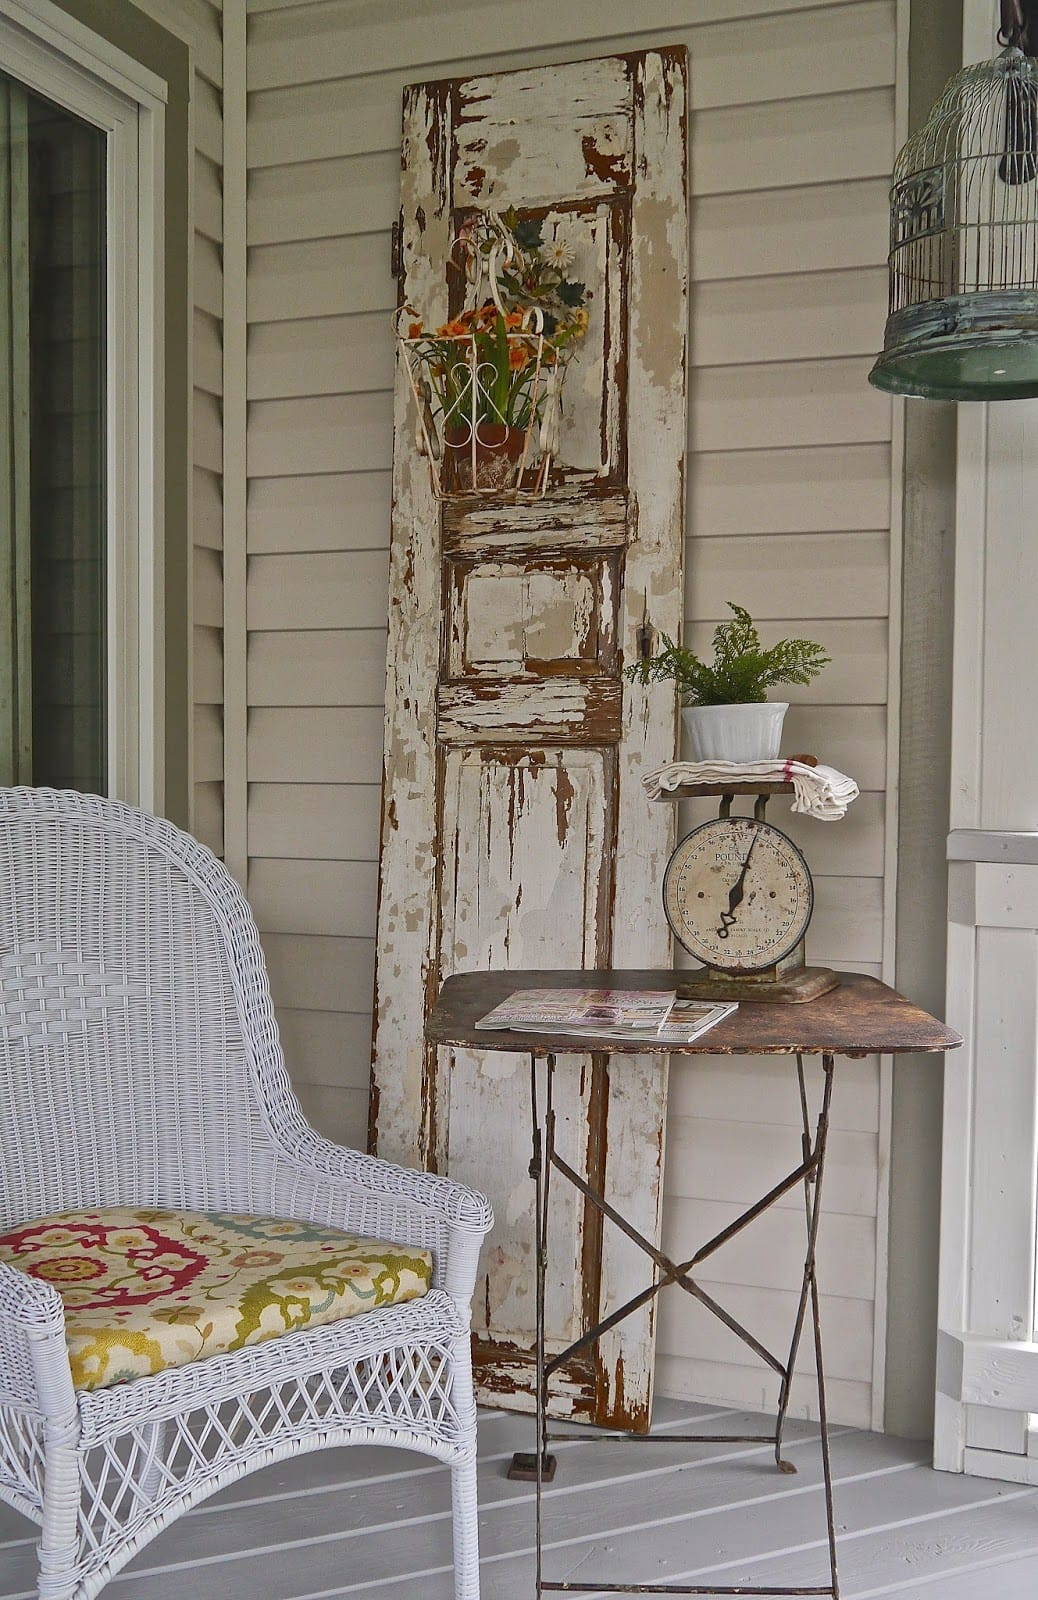 Best Vintage Porch Decor Ideas #13